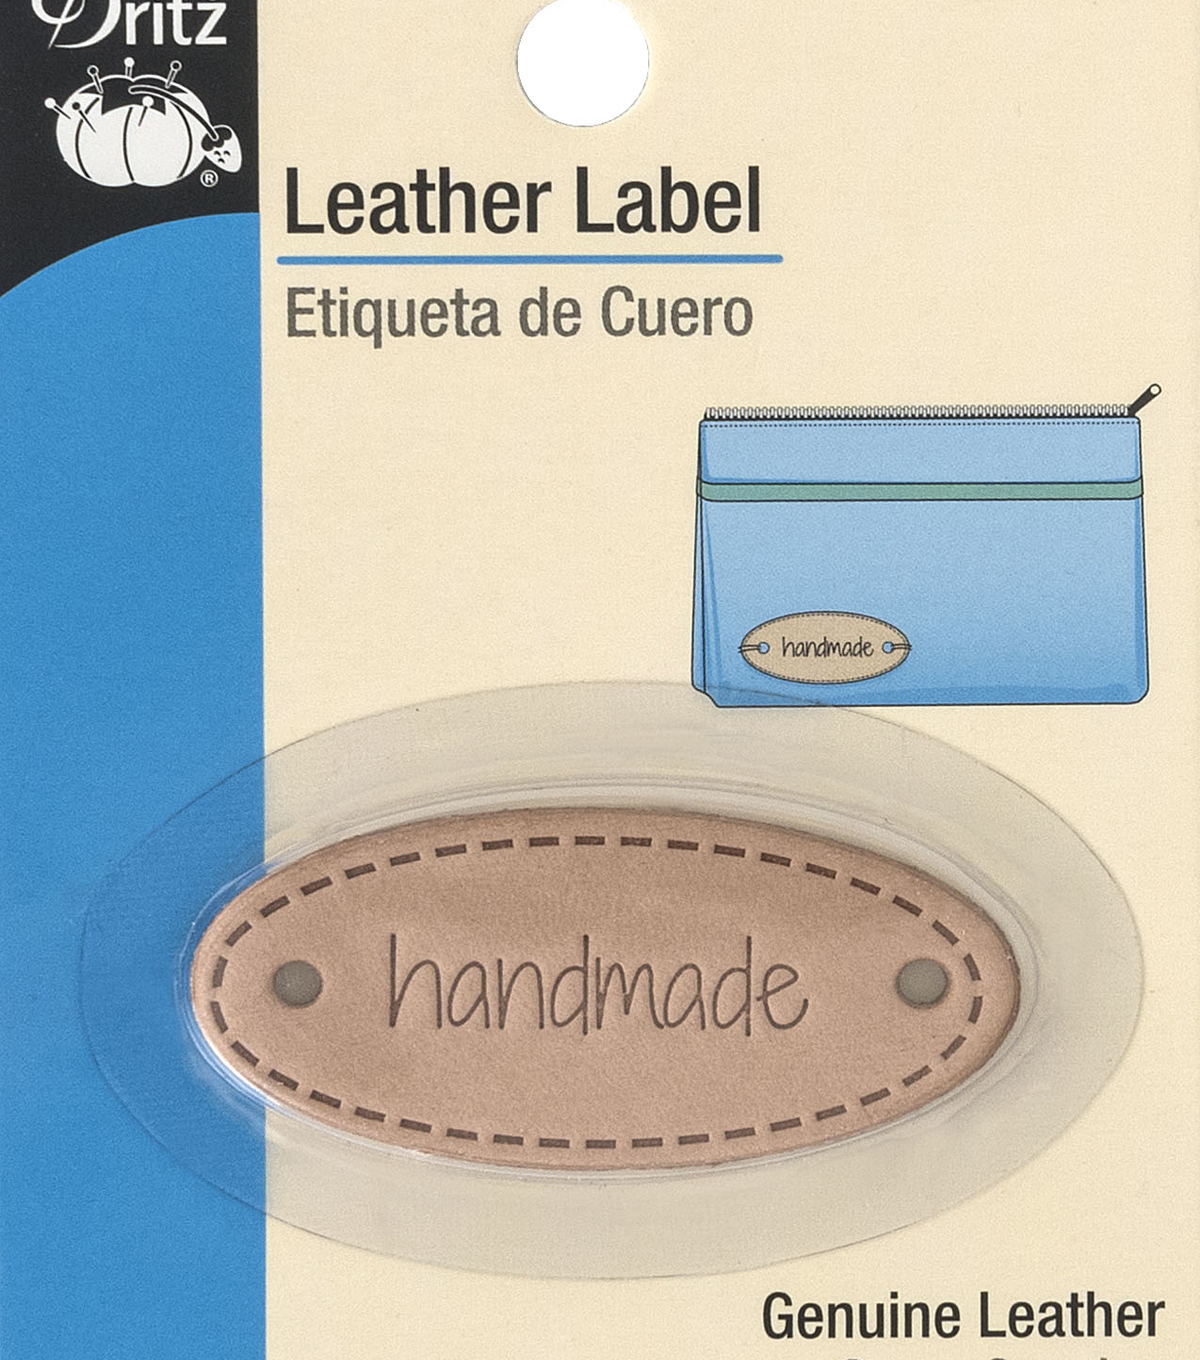 Dritz Leather Oval Label-handmade